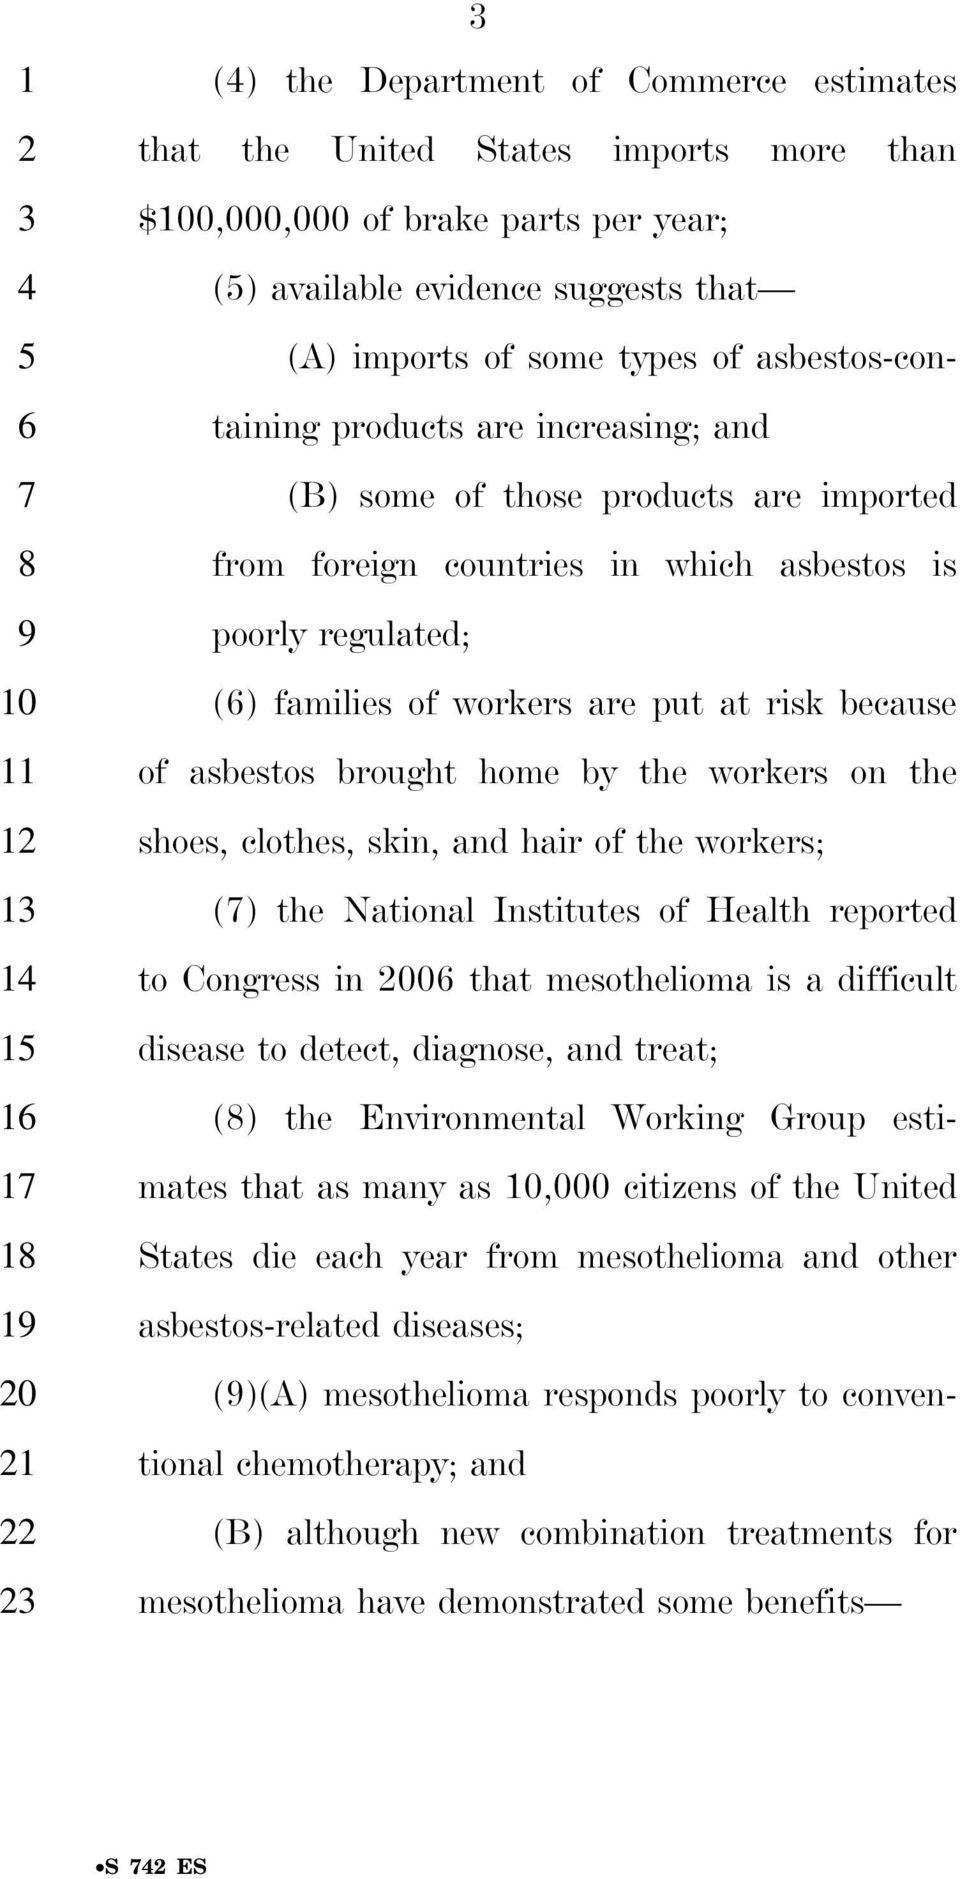 of asbestos brought home by the workers on the shoes, clothes, skin, and hair of the workers; () the National Institutes of Health reported to Congress in 00 that mesothelioma is a difficult disease